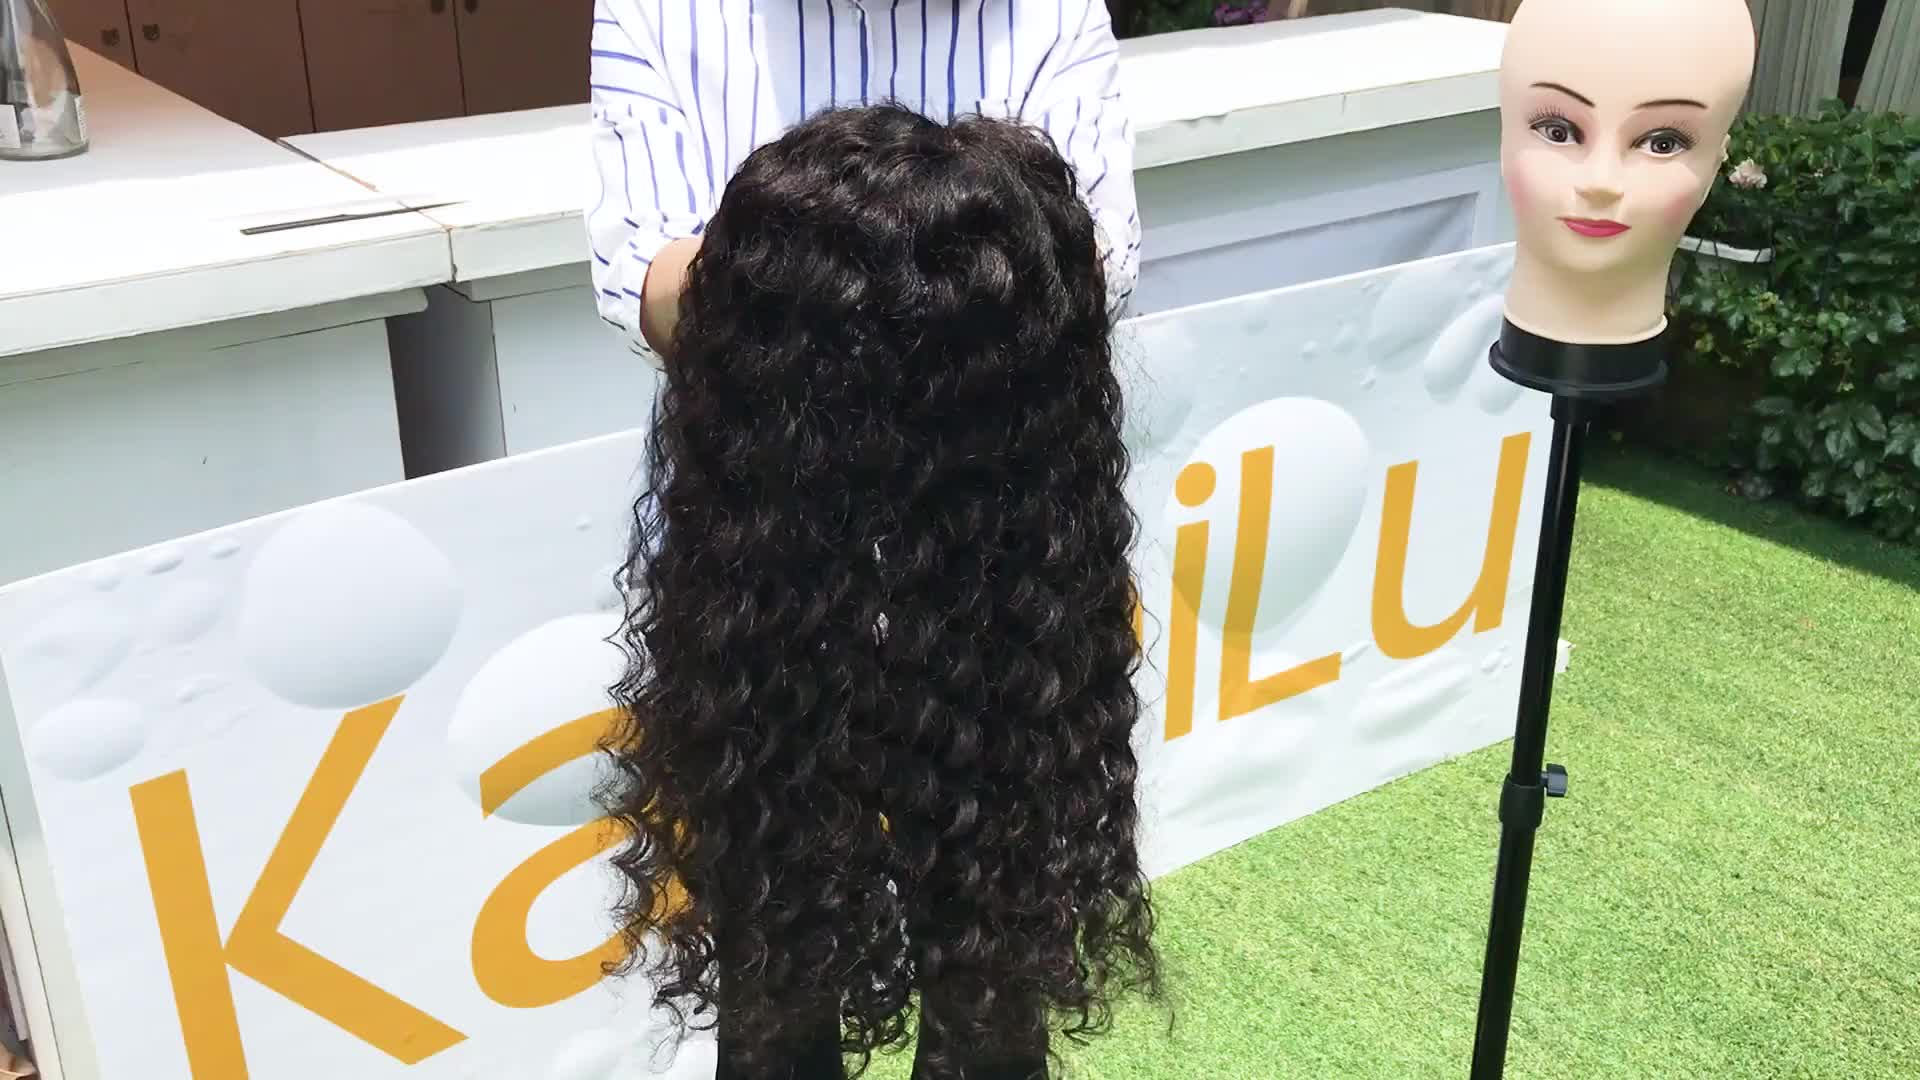 High women s wigs kinky curly  wig lace full lace wigs under 100,Lace Frontal/Wig Look Natural,front lace wig vietnamese hair